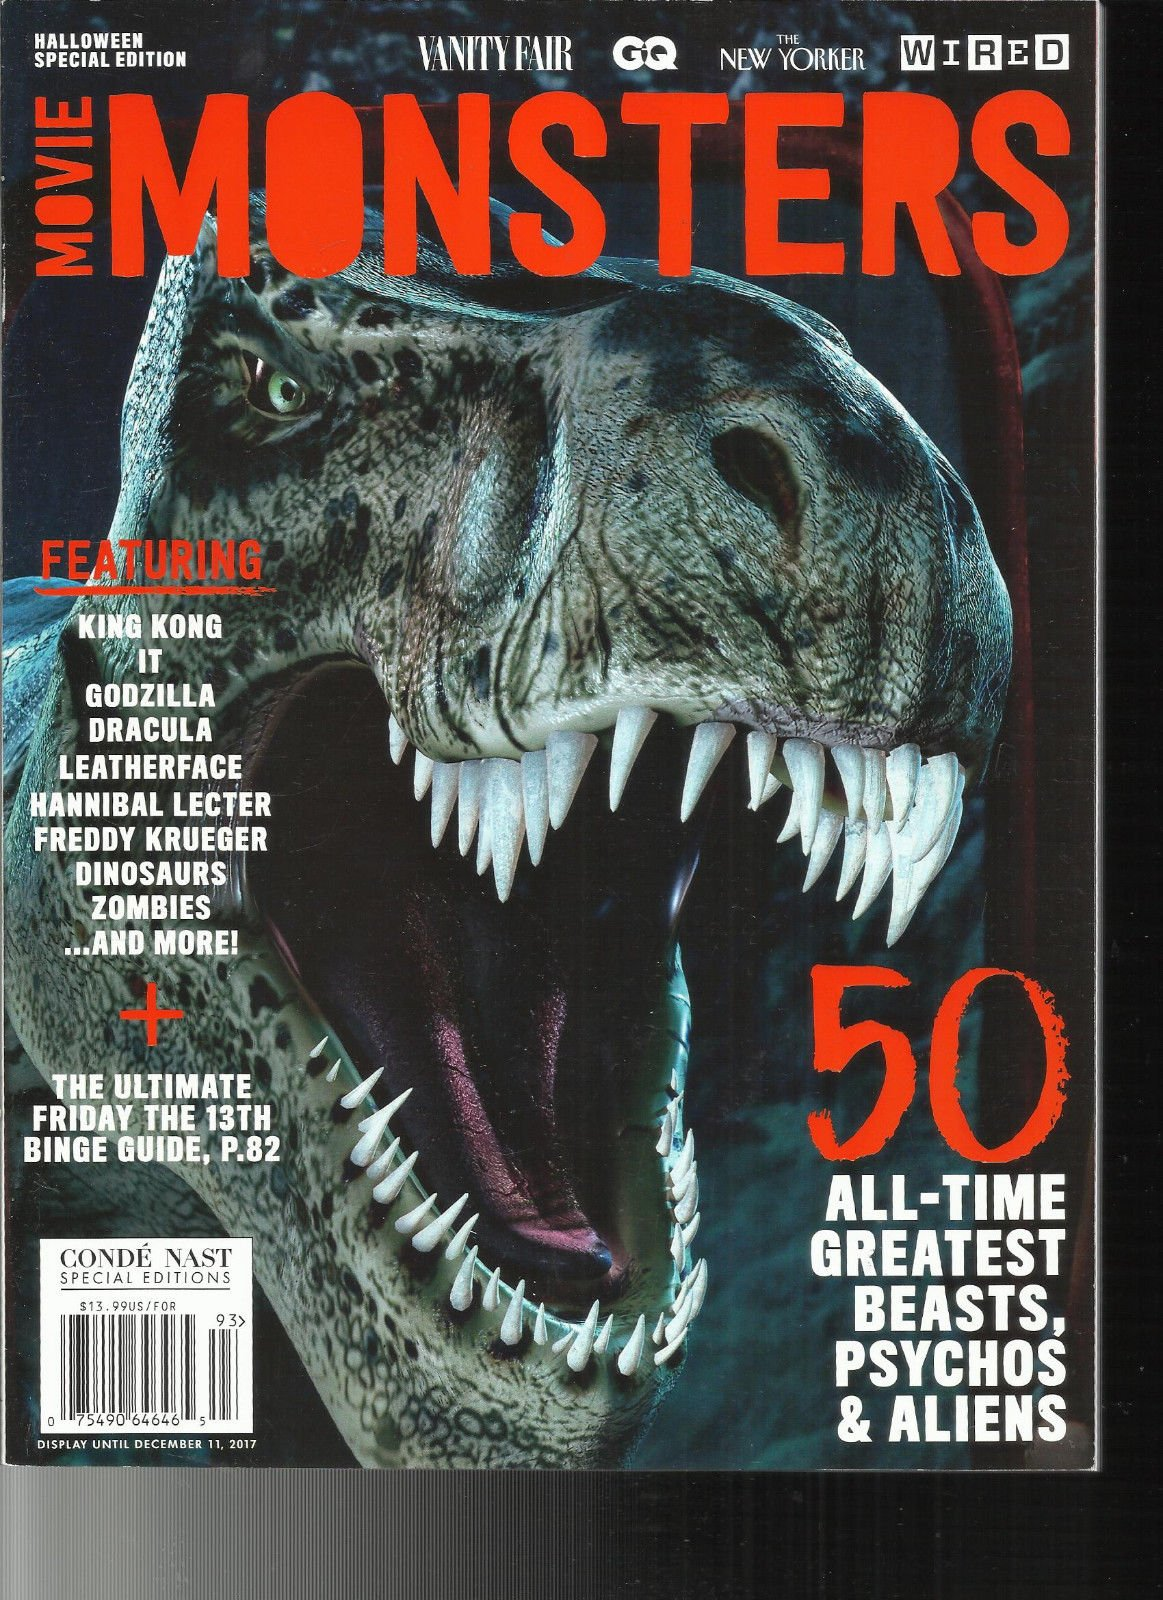 MOVIE MONSTERS MAGAZINE, HALLOWEEN SPECIAL EDITION, 2017